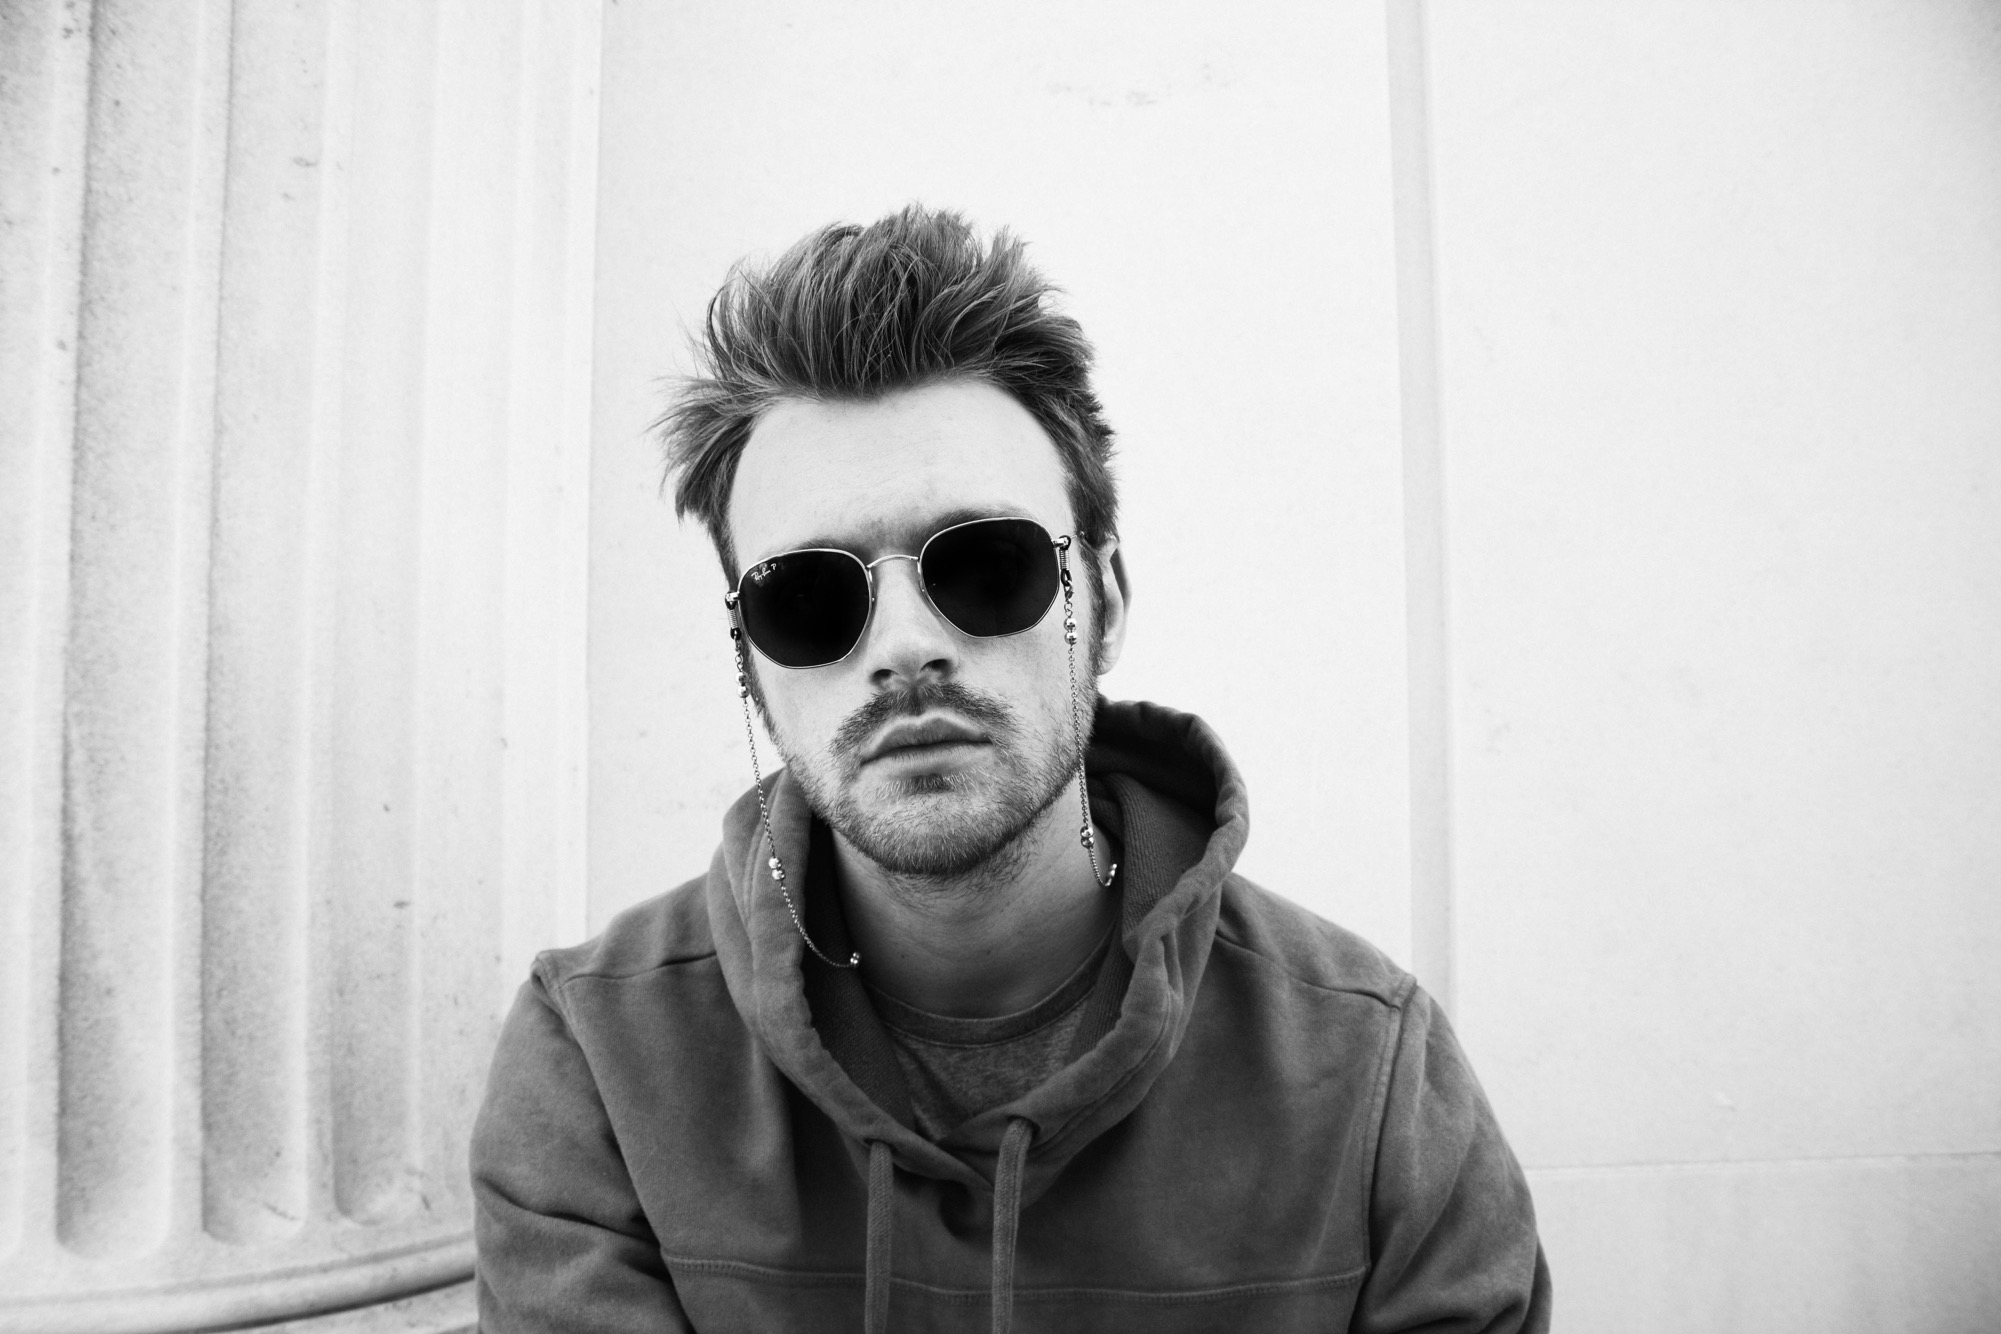 listen - college - by - finneas - indie music - indie pop - new music - music blog - indie blog - wolf in a suit - wolfinasuit - wolf in a suit blog - wolf in a suit music blog